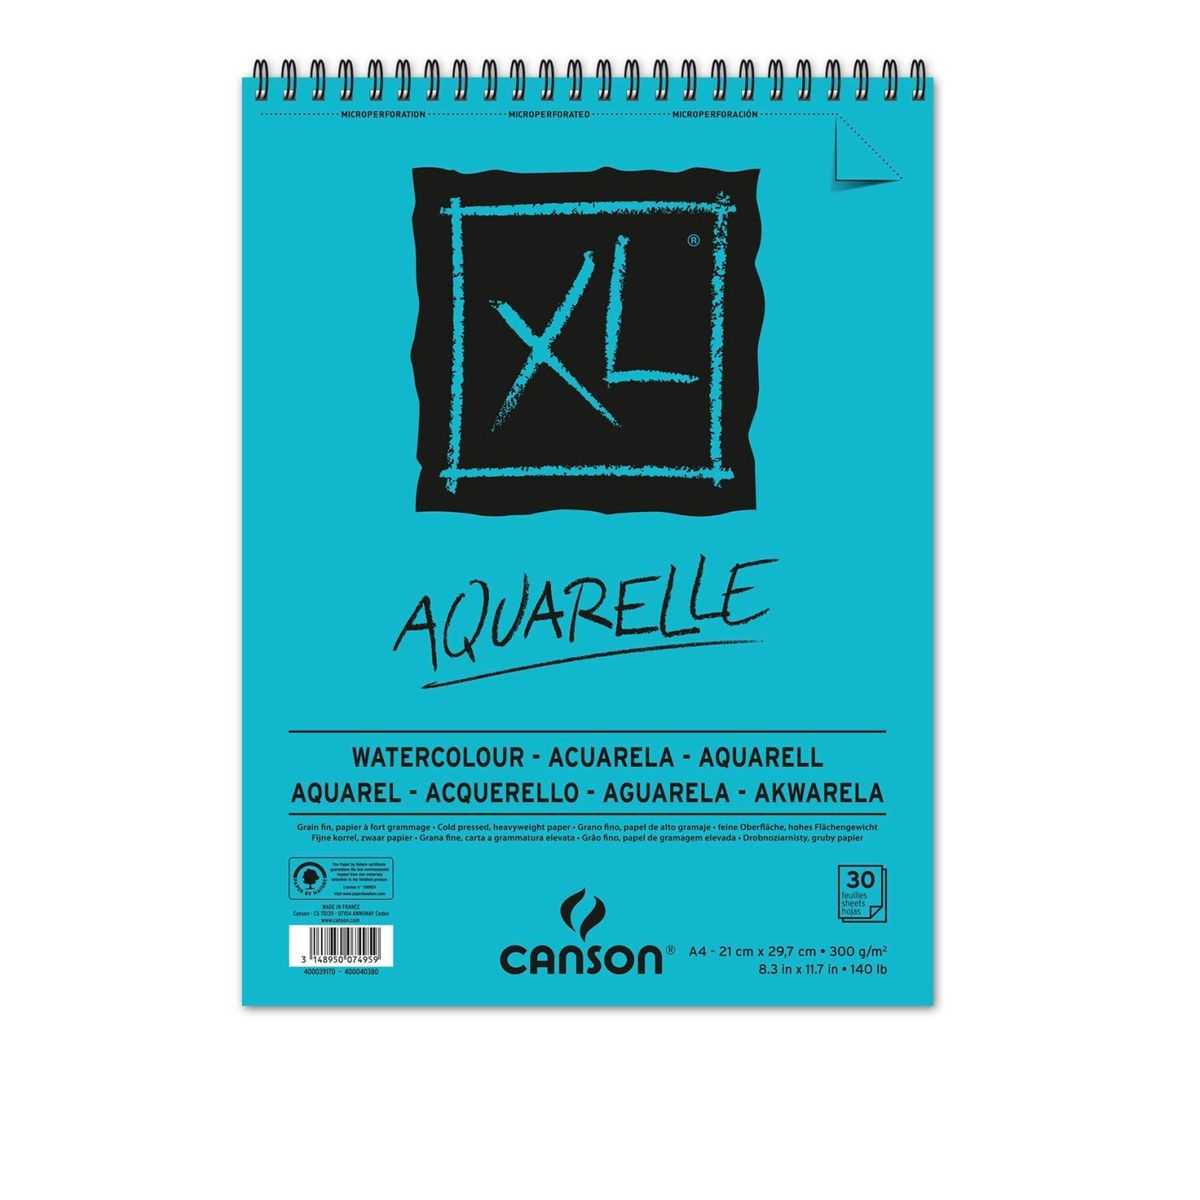 SKETCHBOOK CANSON XL AQUARELLE A4 300G/M² 30 PÁGINAS